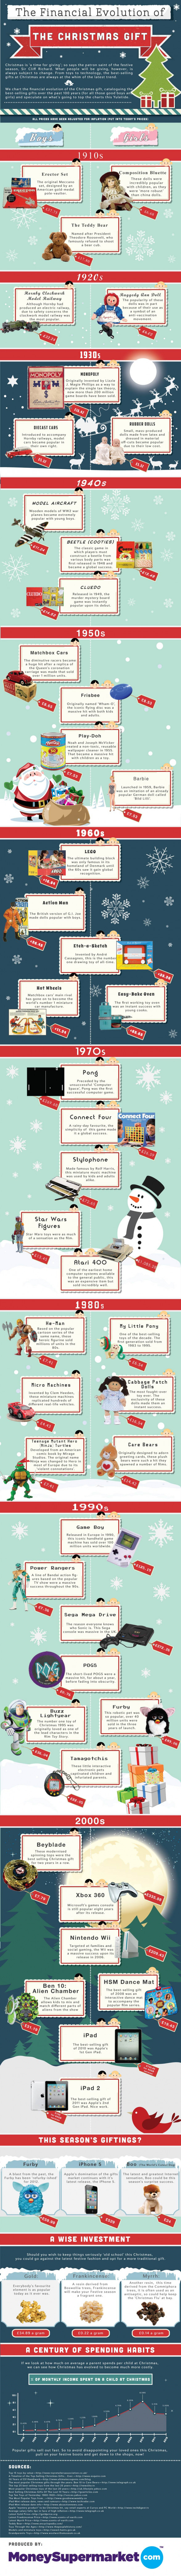 The Financial Evolution Of The Christmas Gift